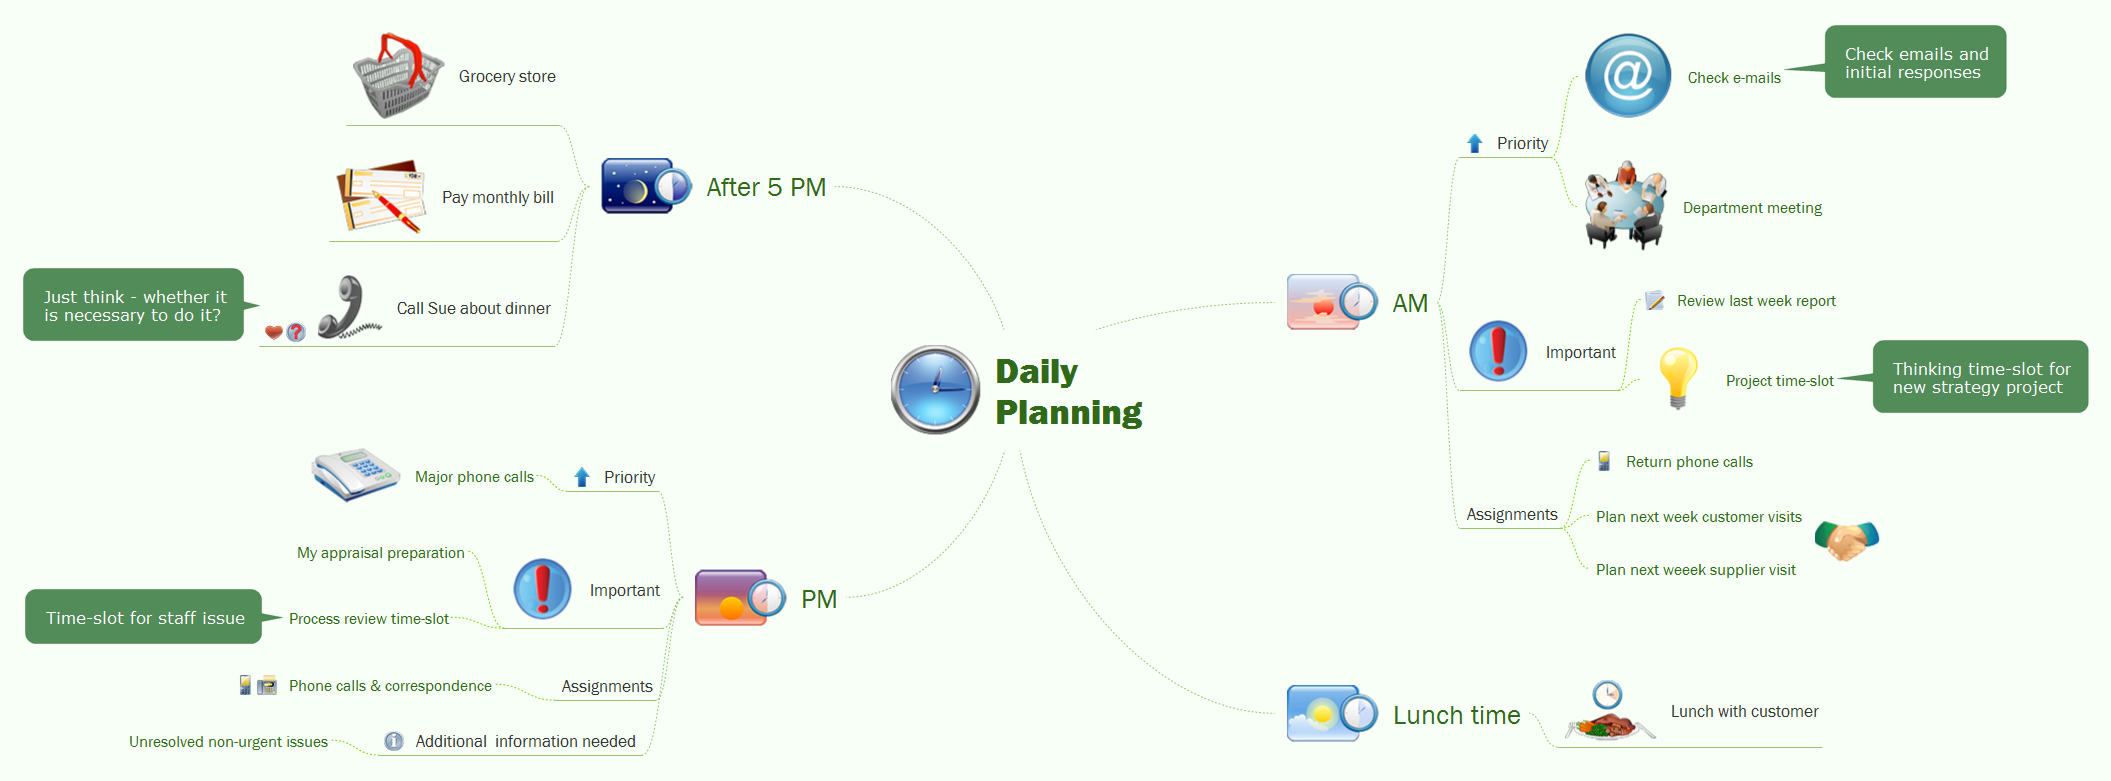 Daily planning mindmap